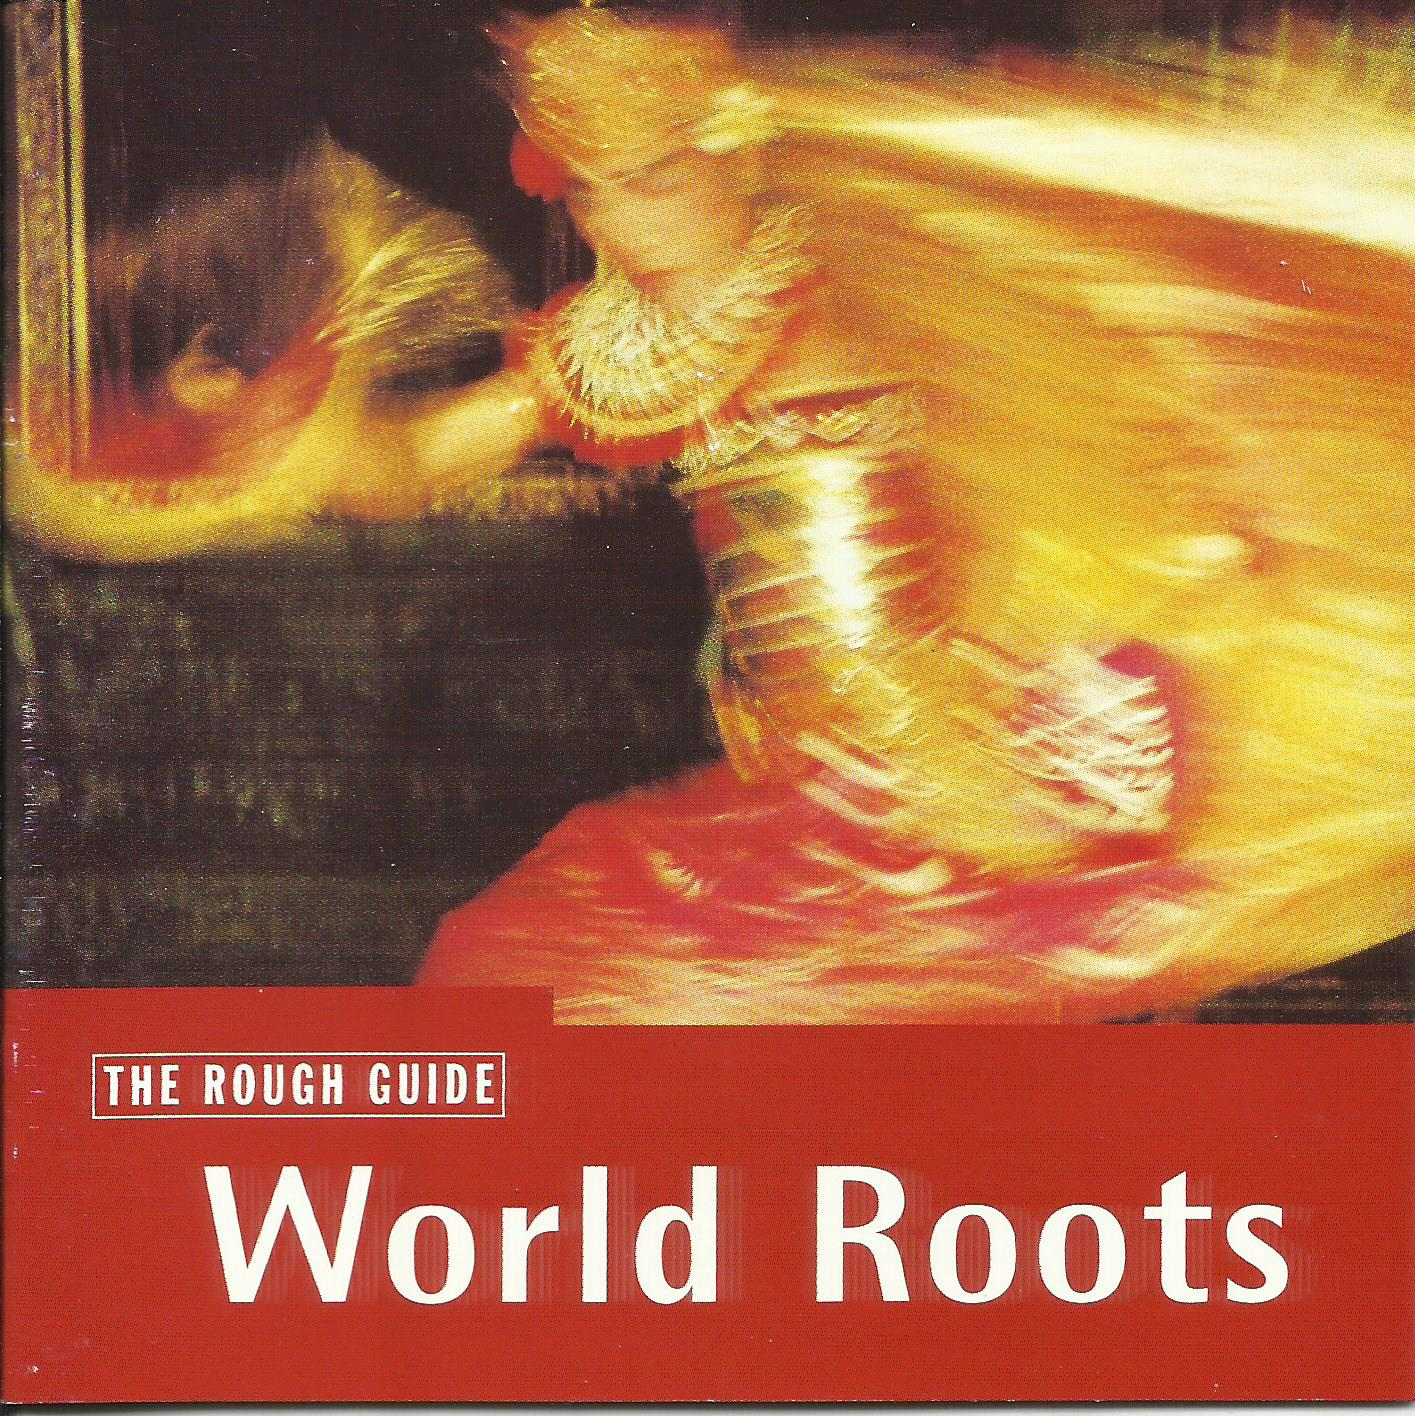 World Roots